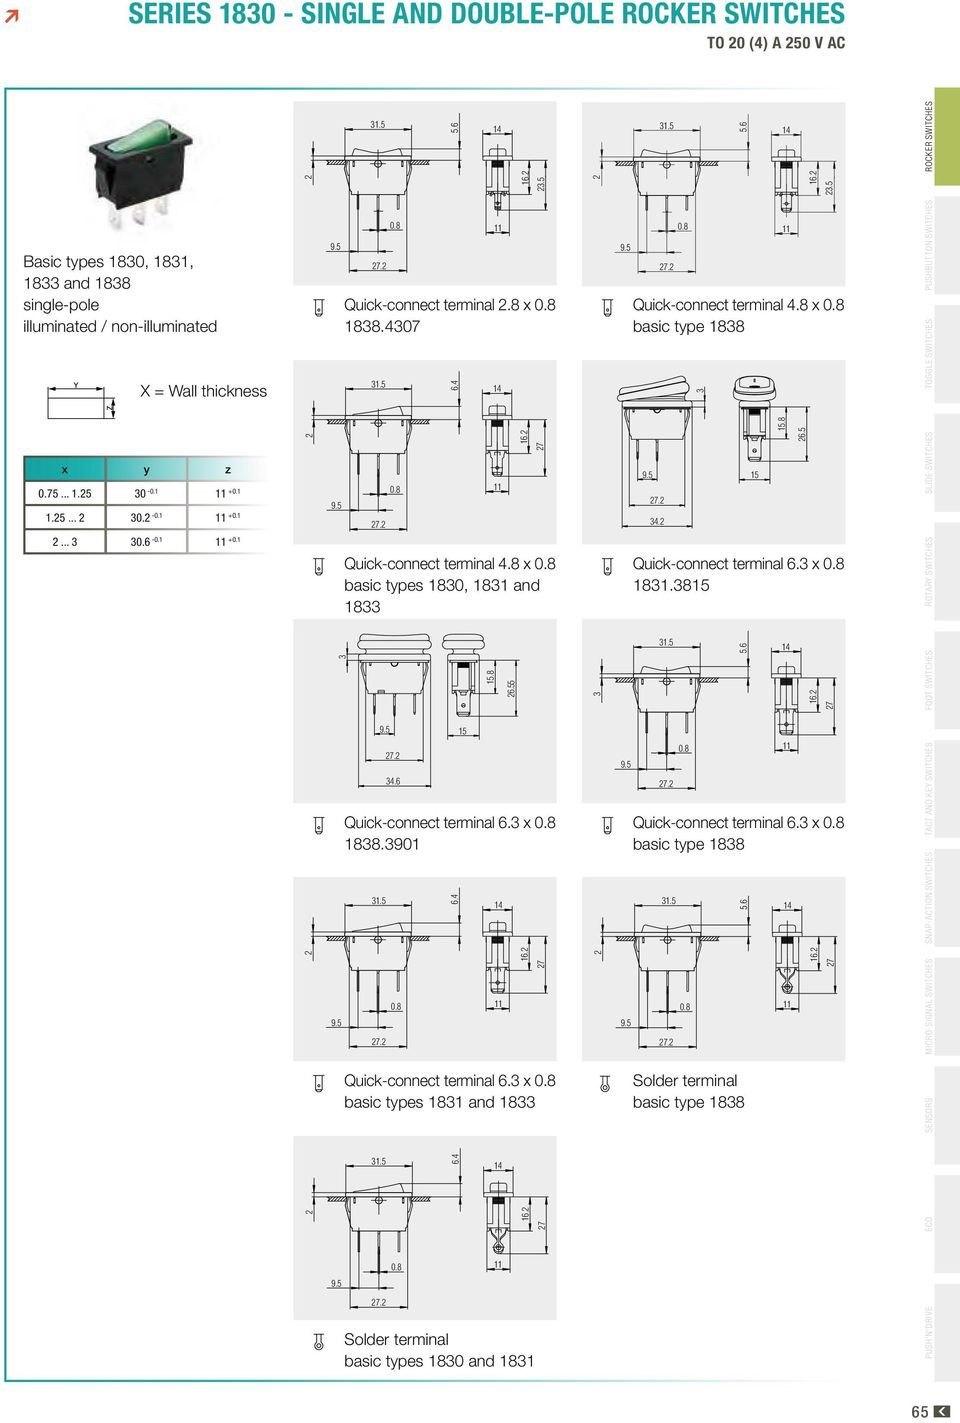 Series Single And Double Pole Rocker Switches To 20 4 A 250 V Ac Pdf Mini Rockers Illuminated Non Spst 55 Quick Connect Terminal 63 X Basic Types 1831 1833 15 16 7